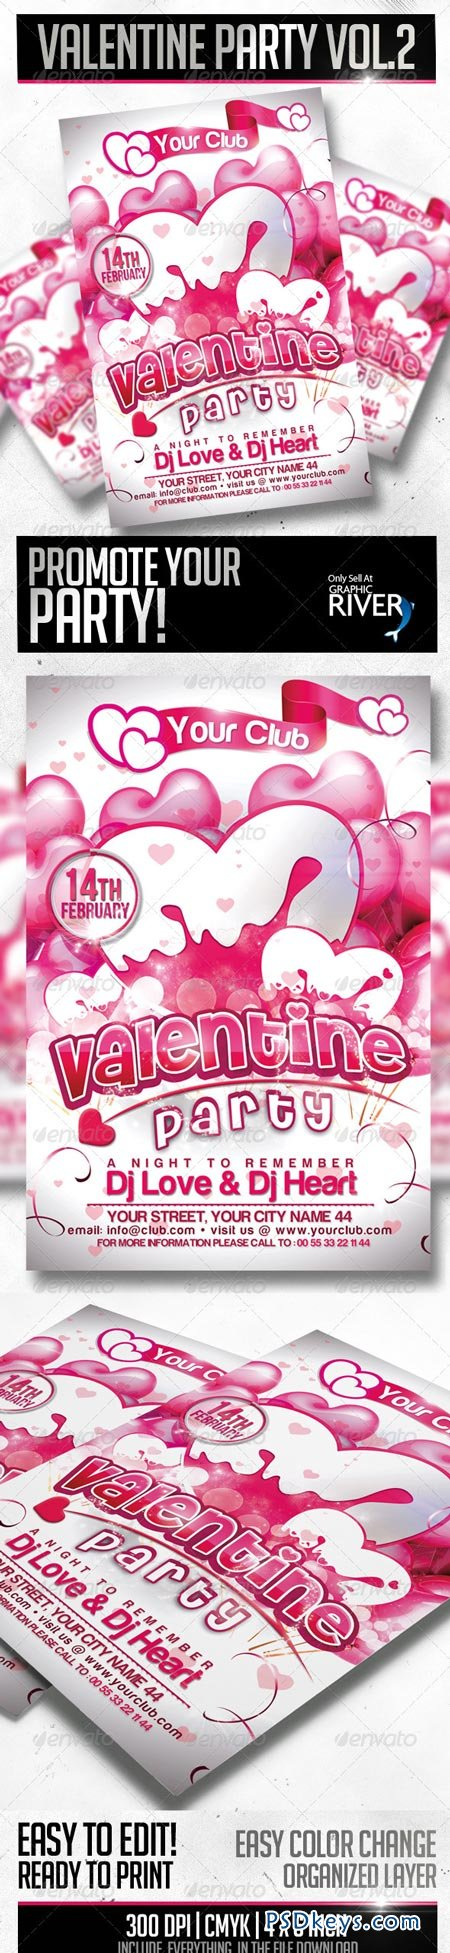 Valentine Party Flyer Template 3814430